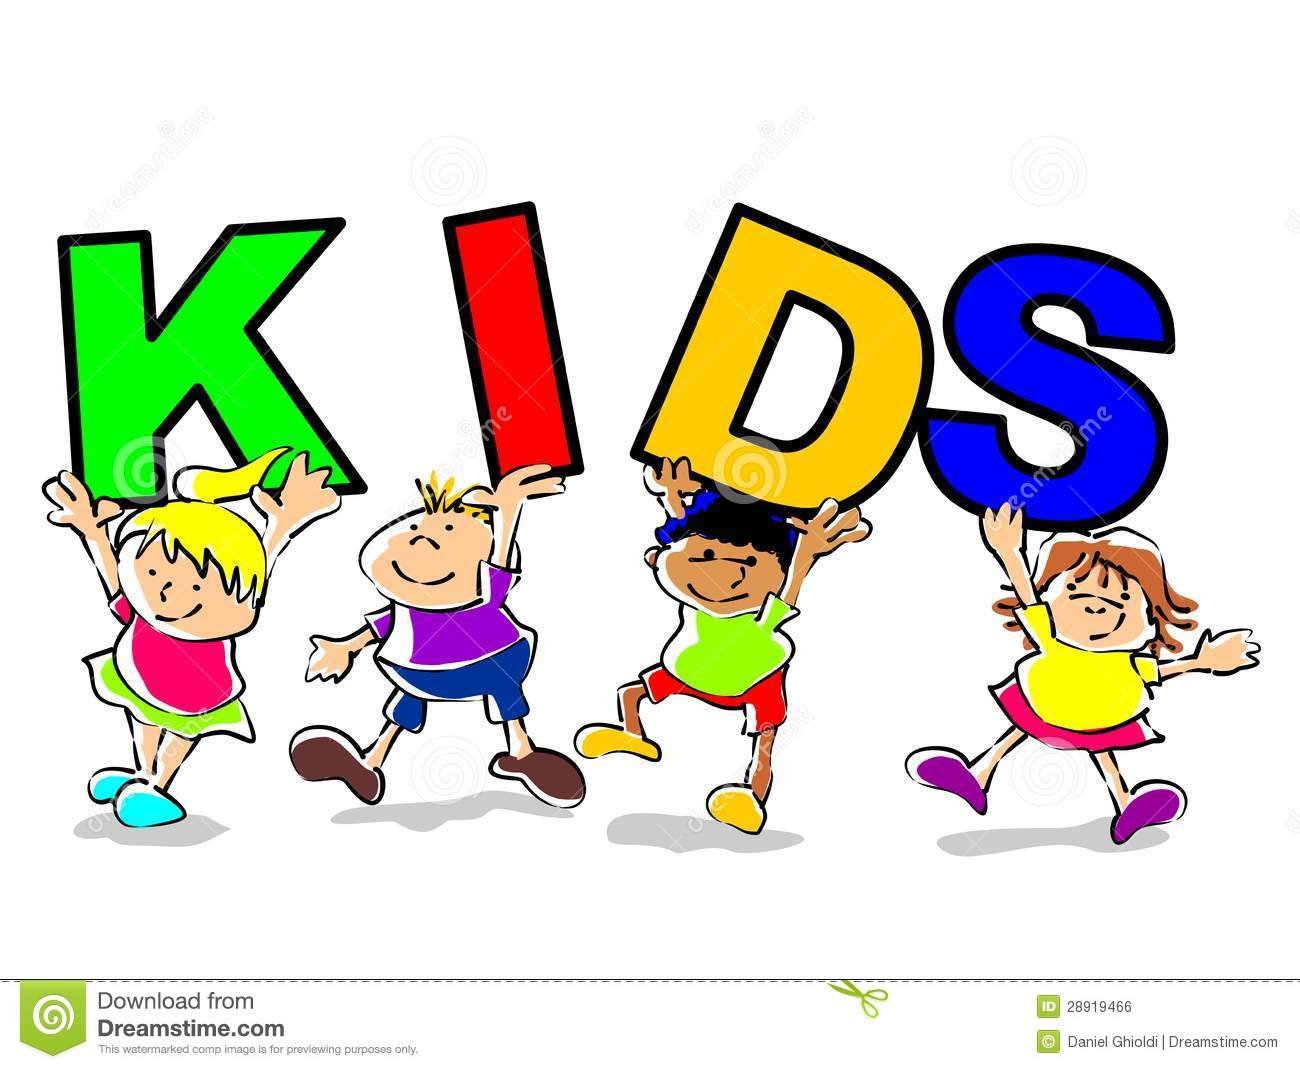 Kids Funny Illustration Royalty Free Stock Image - Image ...